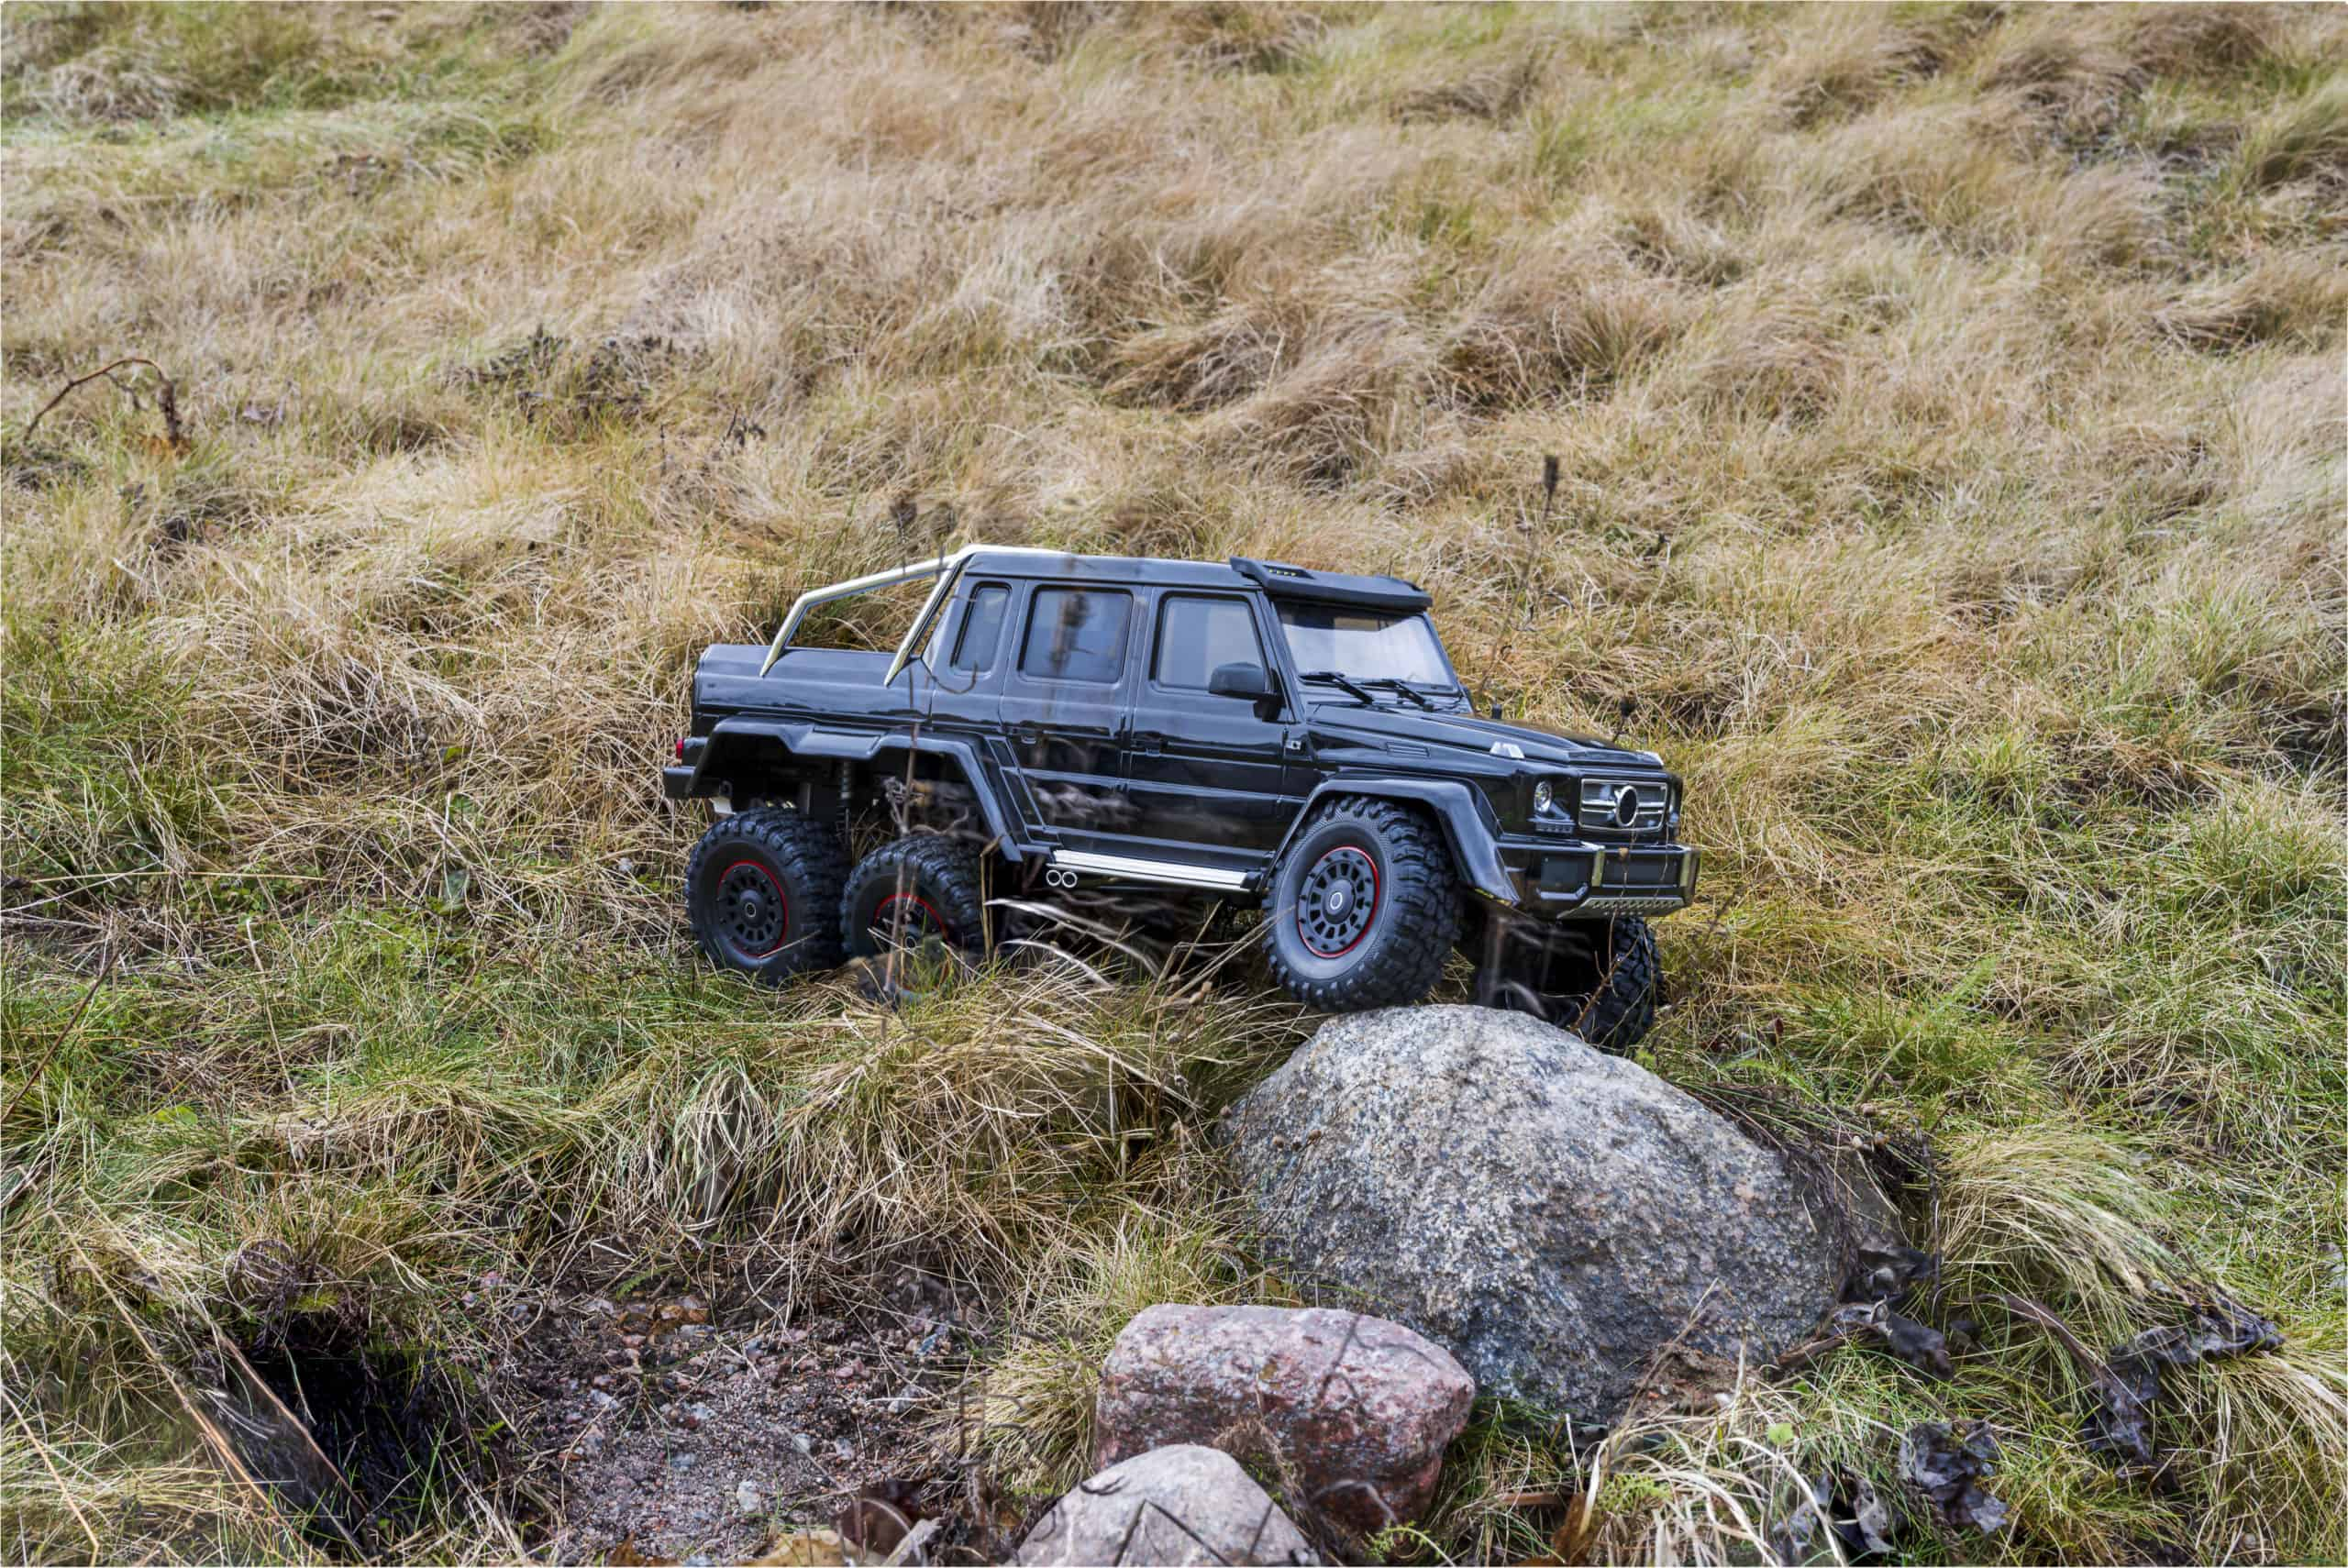 10 Best Rc Rock Crawlers 2021 Reviews